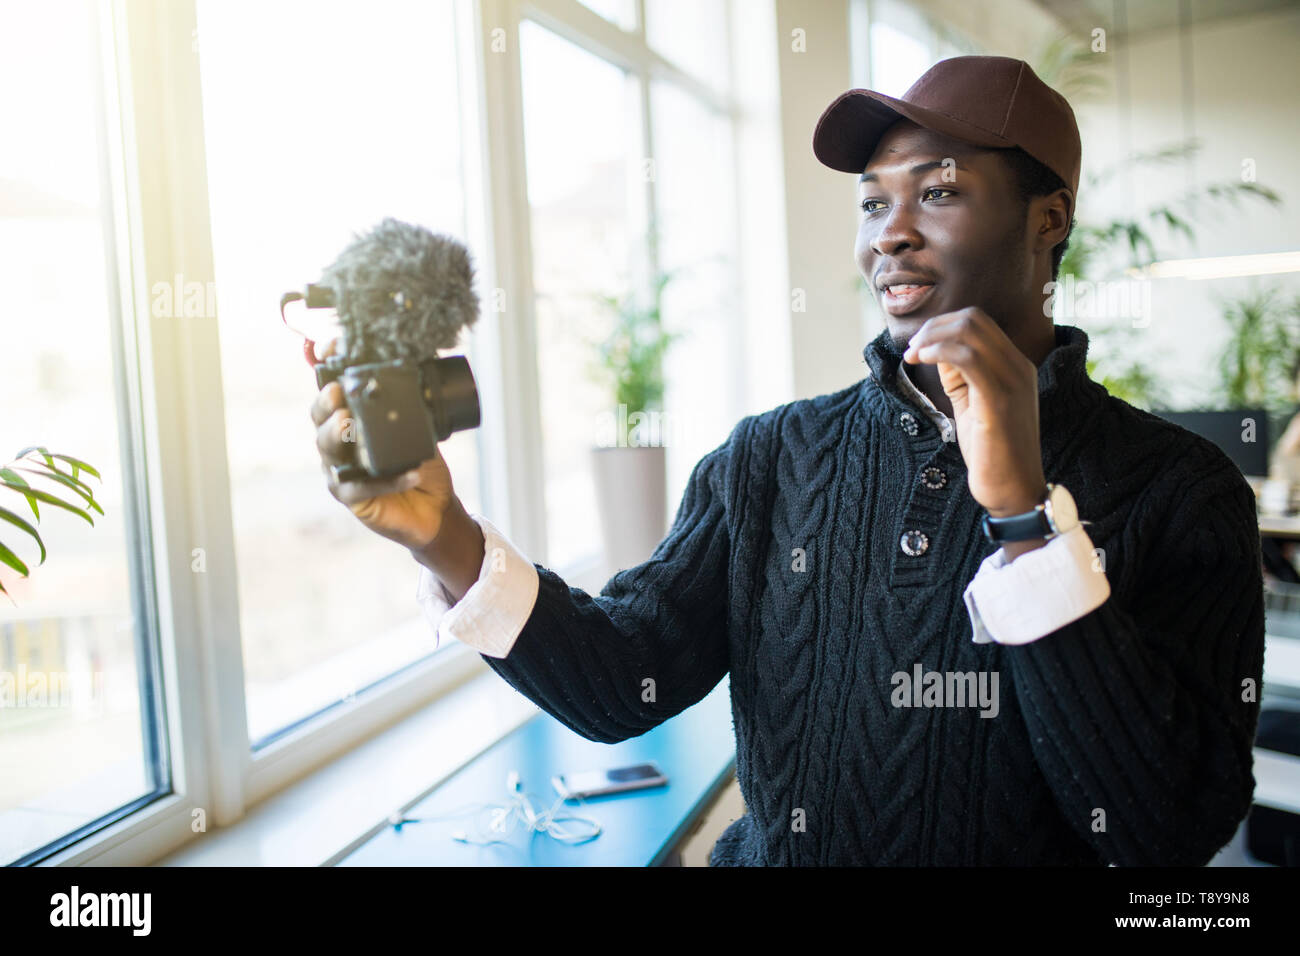 Young african man speaker talking on digital camera recording vlog. African male vlogger or business trainer speaking shooting blog filming reportage  Stock Photo